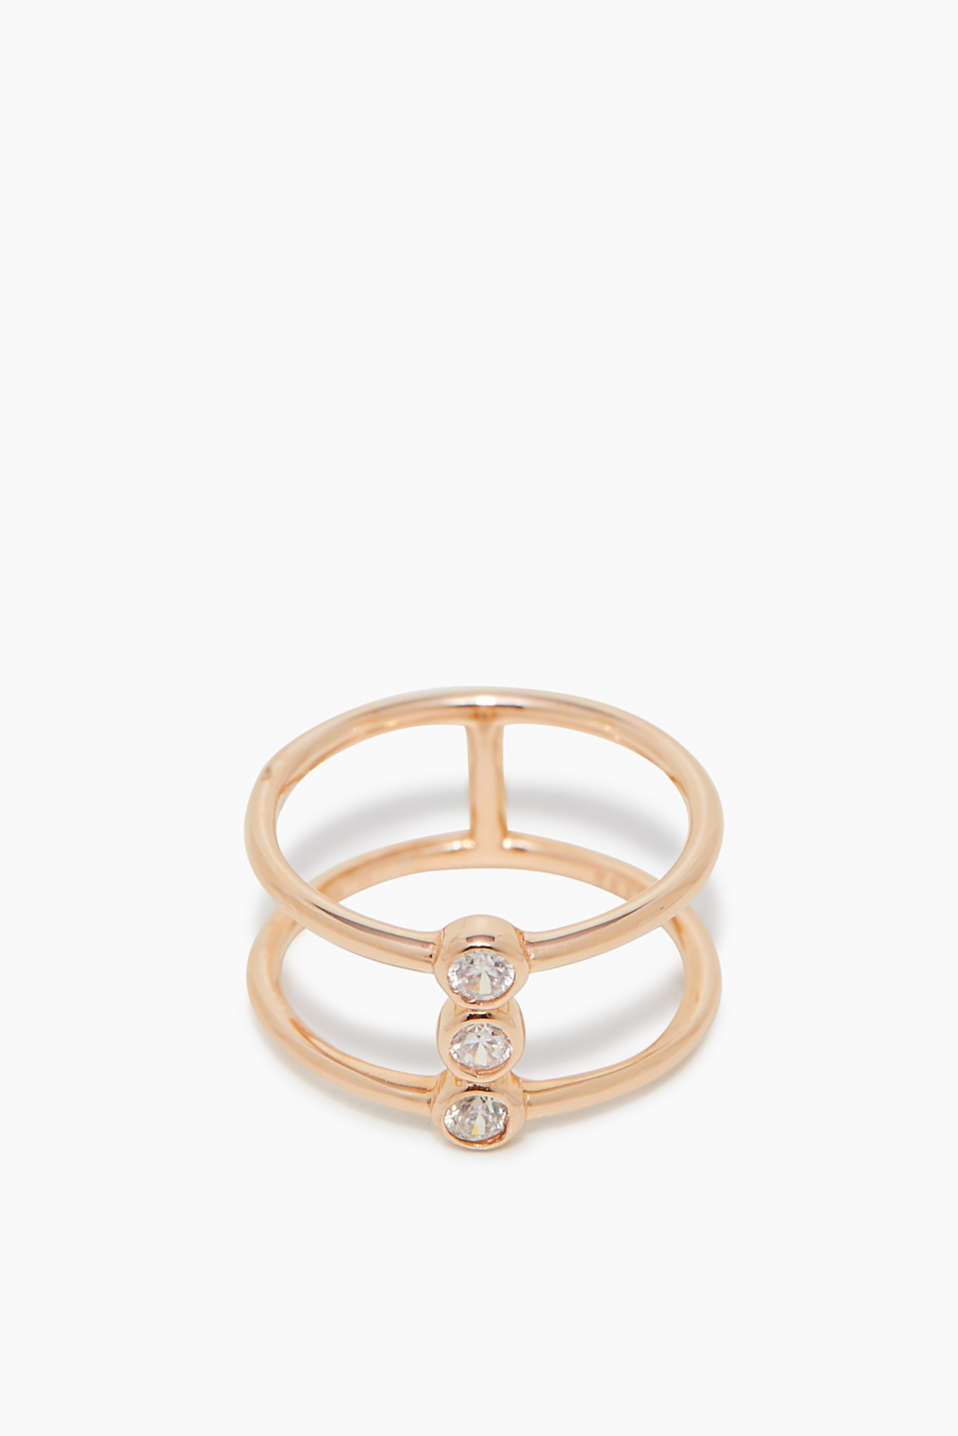 Esprit - Rose gold ring with zirconia, made of silver